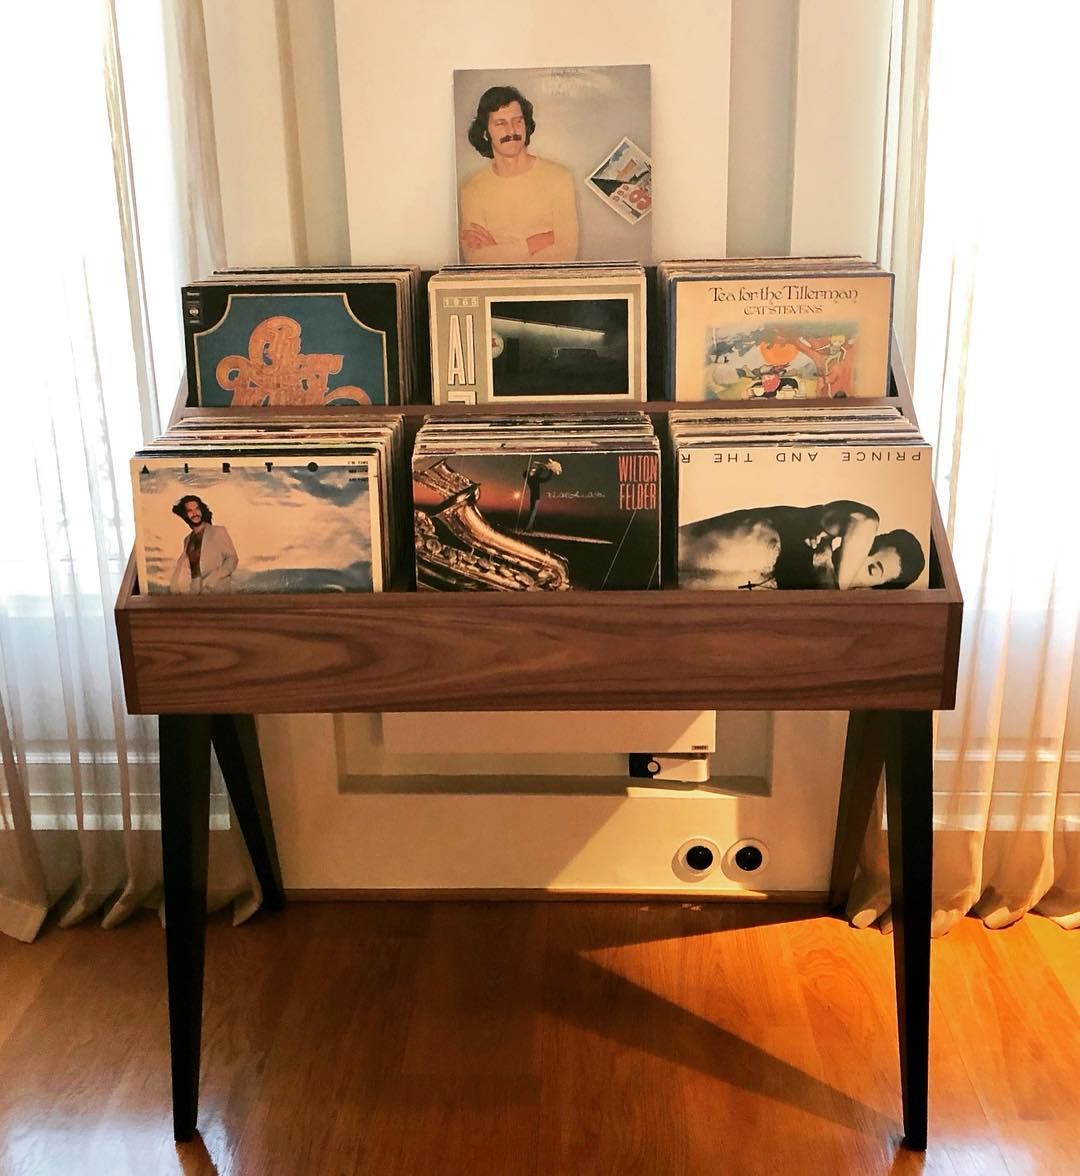 Atocha Design On Instagram Our Record Stand Sitting Pretty All Set Up In Her New Home In Paris Vinyl Weship In 2020 Record Stand New Homes Design